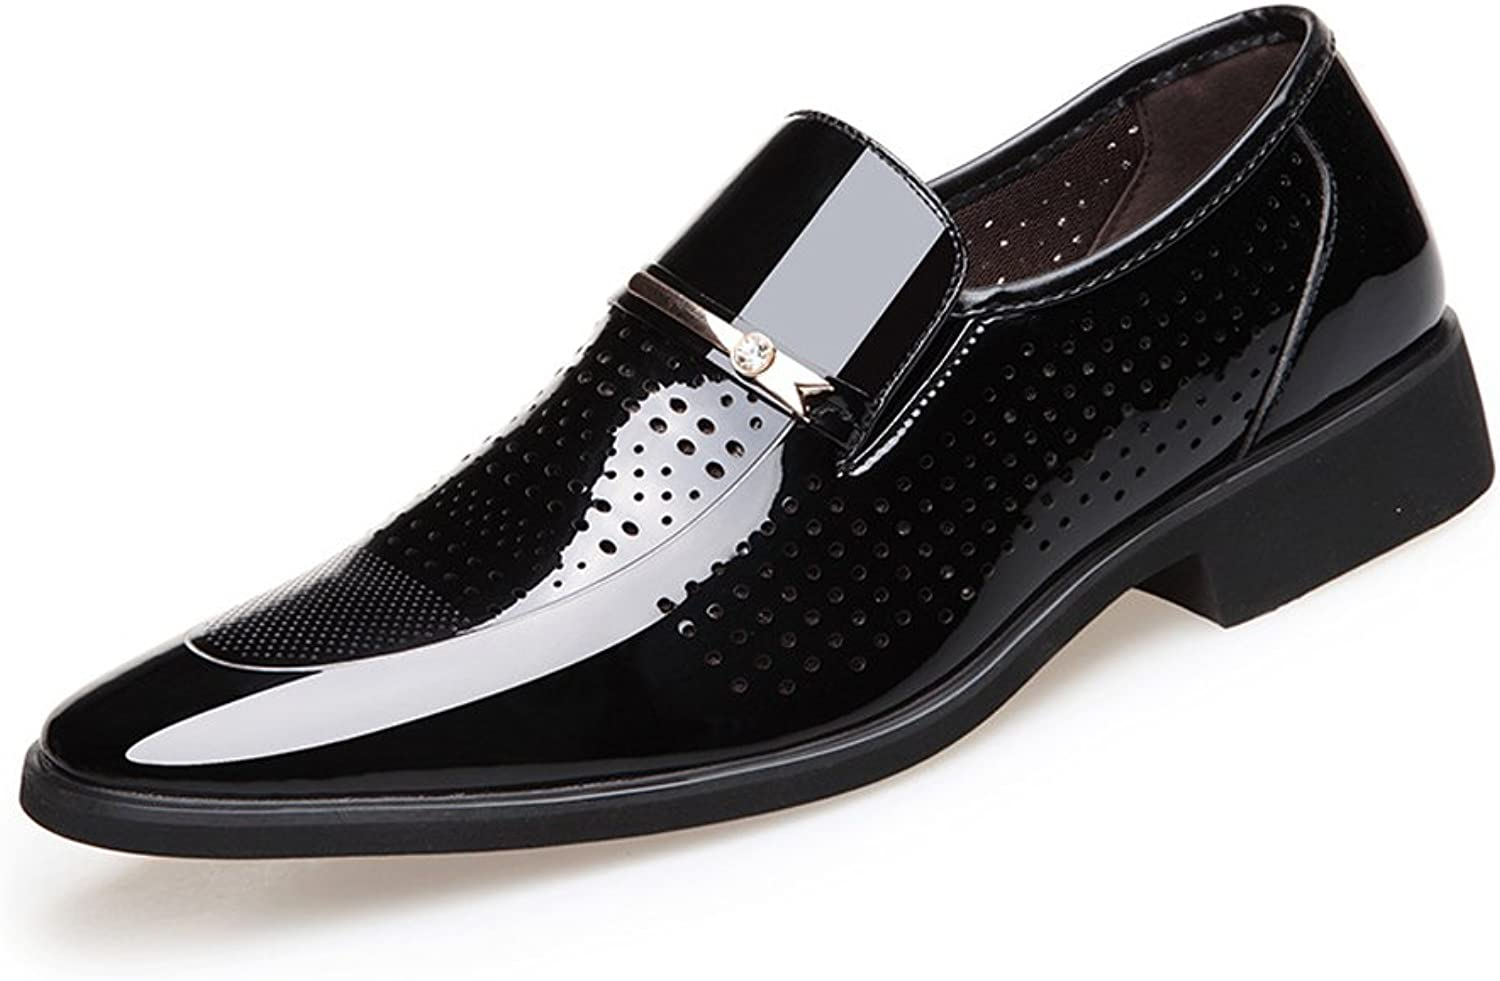 shoes Formal Men's Pointed Toe Txuedo Dress shoes Burnished Smooth PU Leather Slip-on Lined Business Oxfords Leather shoes